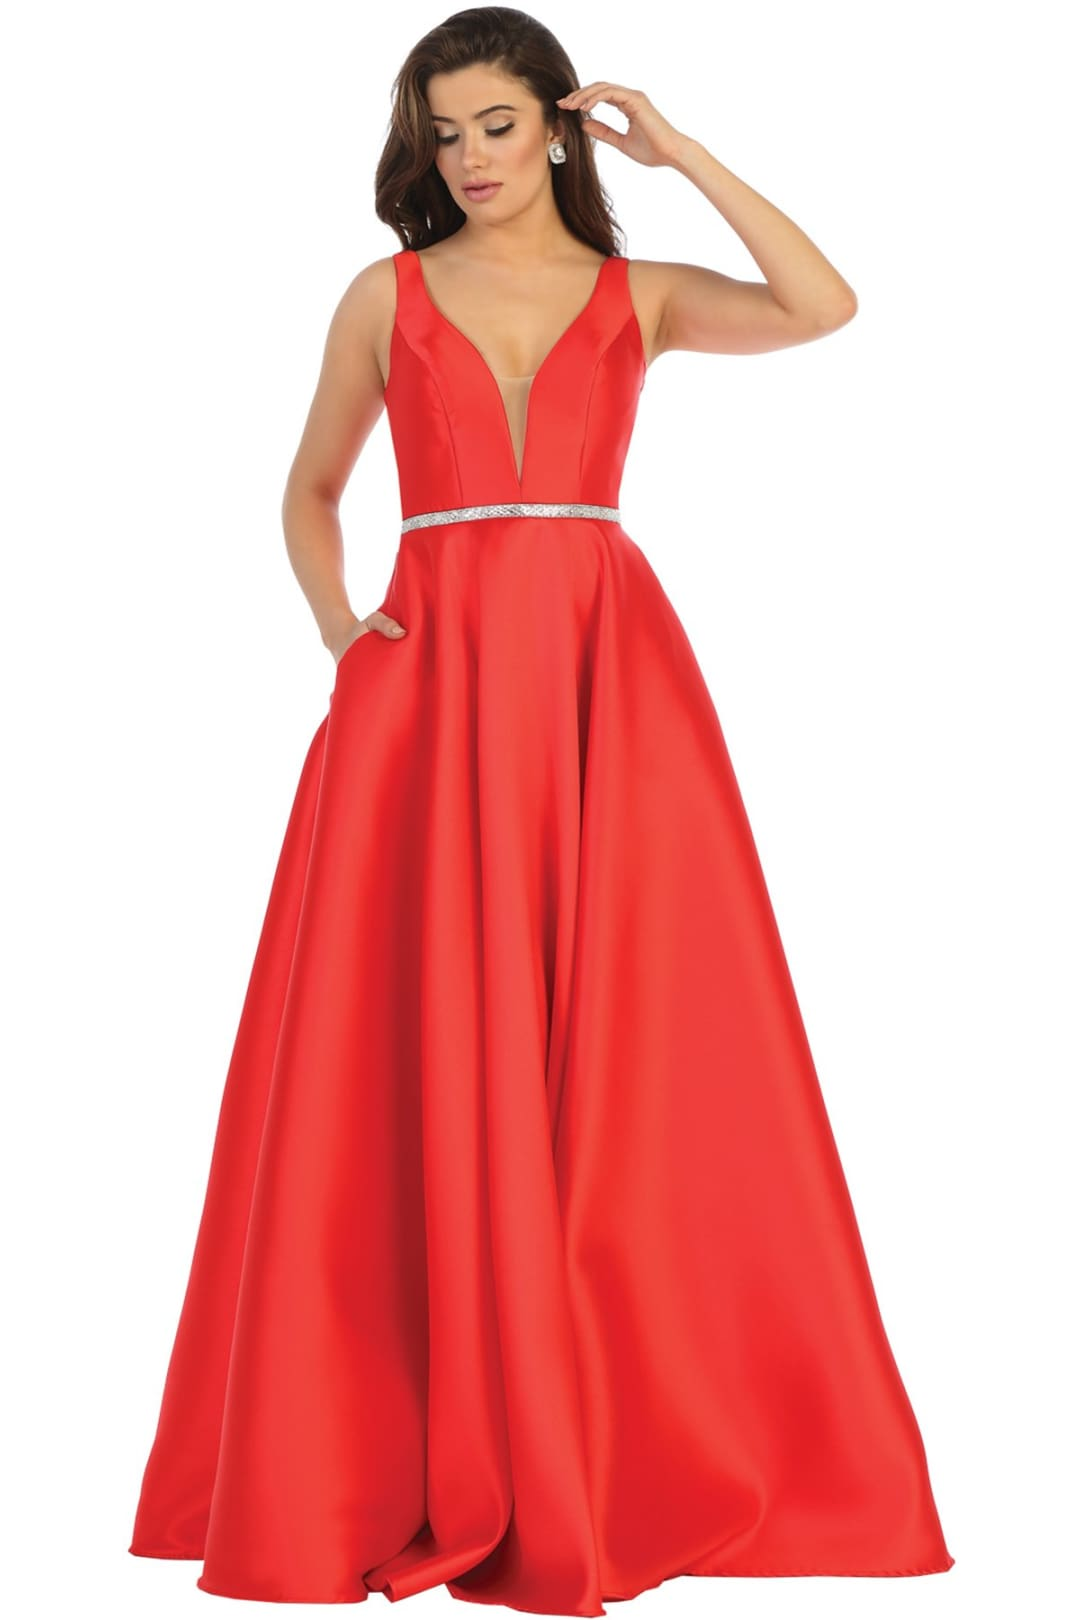 Simple Sleeveless Prom Dress - Red / 4